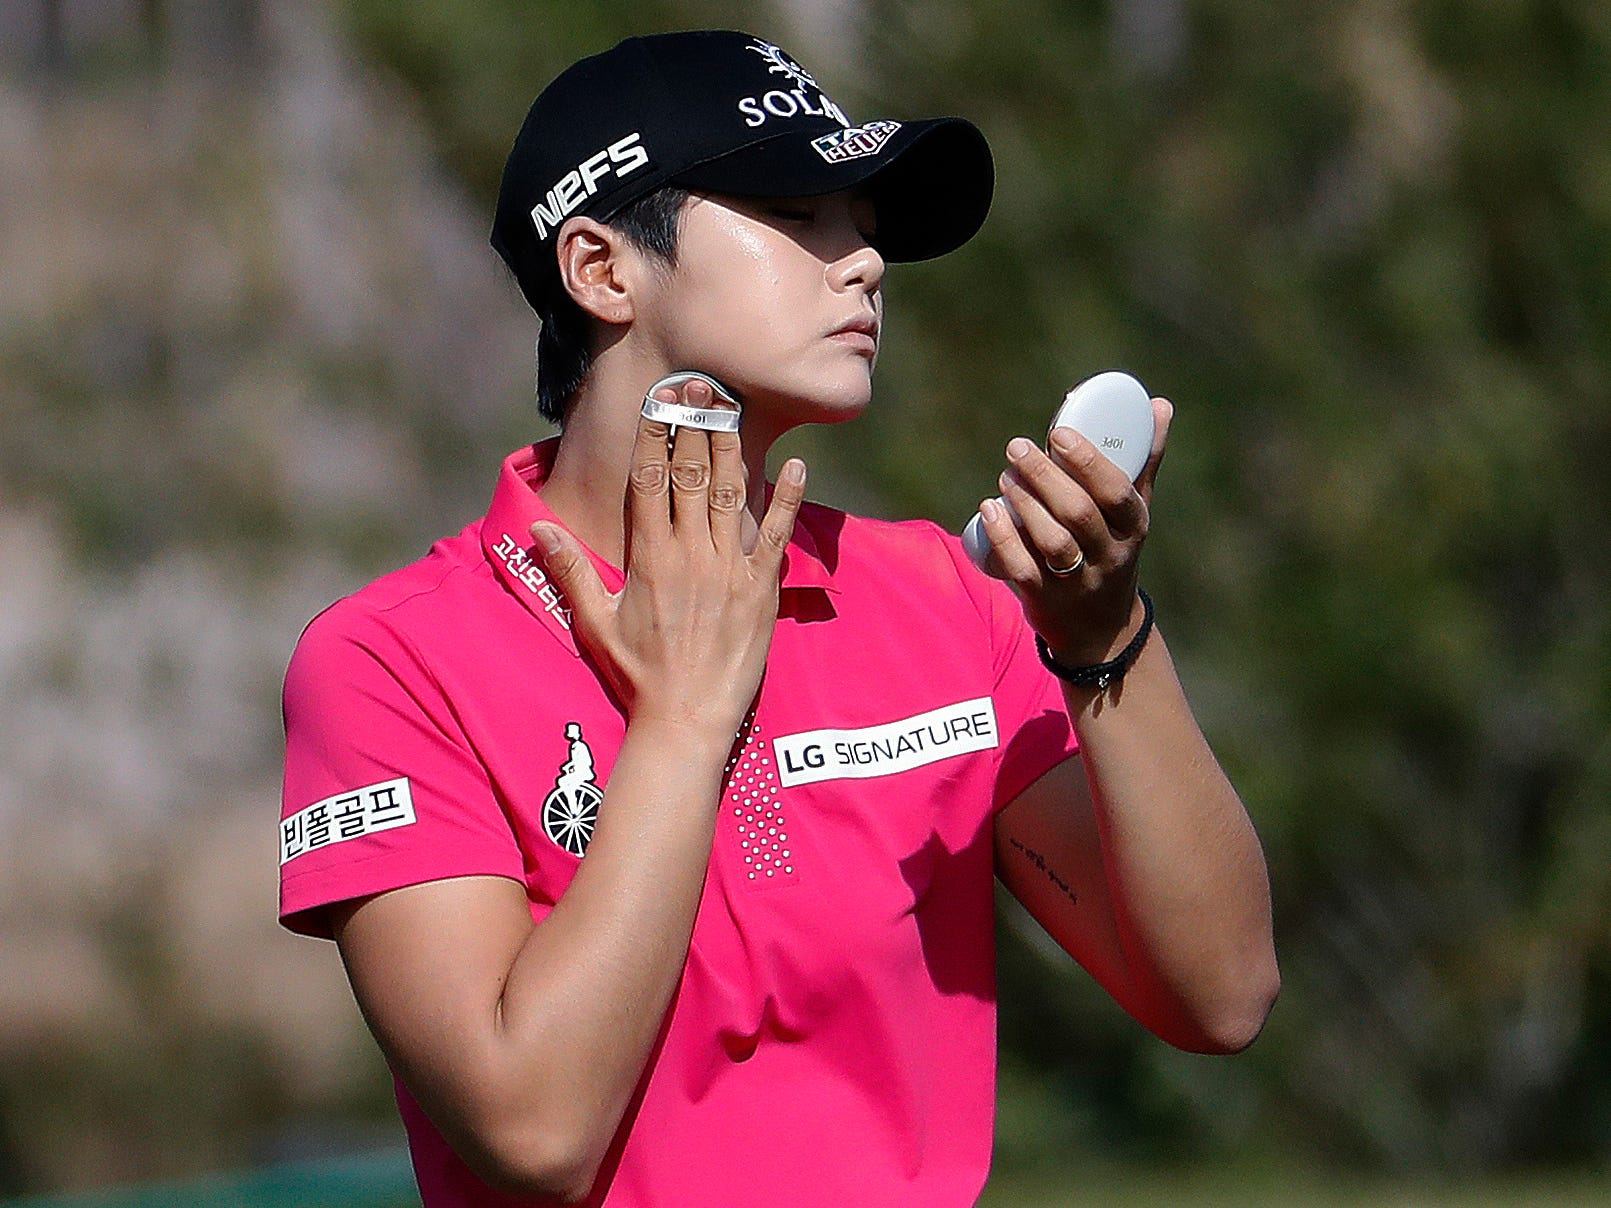 Sung Hyun Park applies sunscreen while on the eighth fairway during the third round of the Founders Cup LPGA golf tournament Saturday, March 23, 2019, in Phoenix.